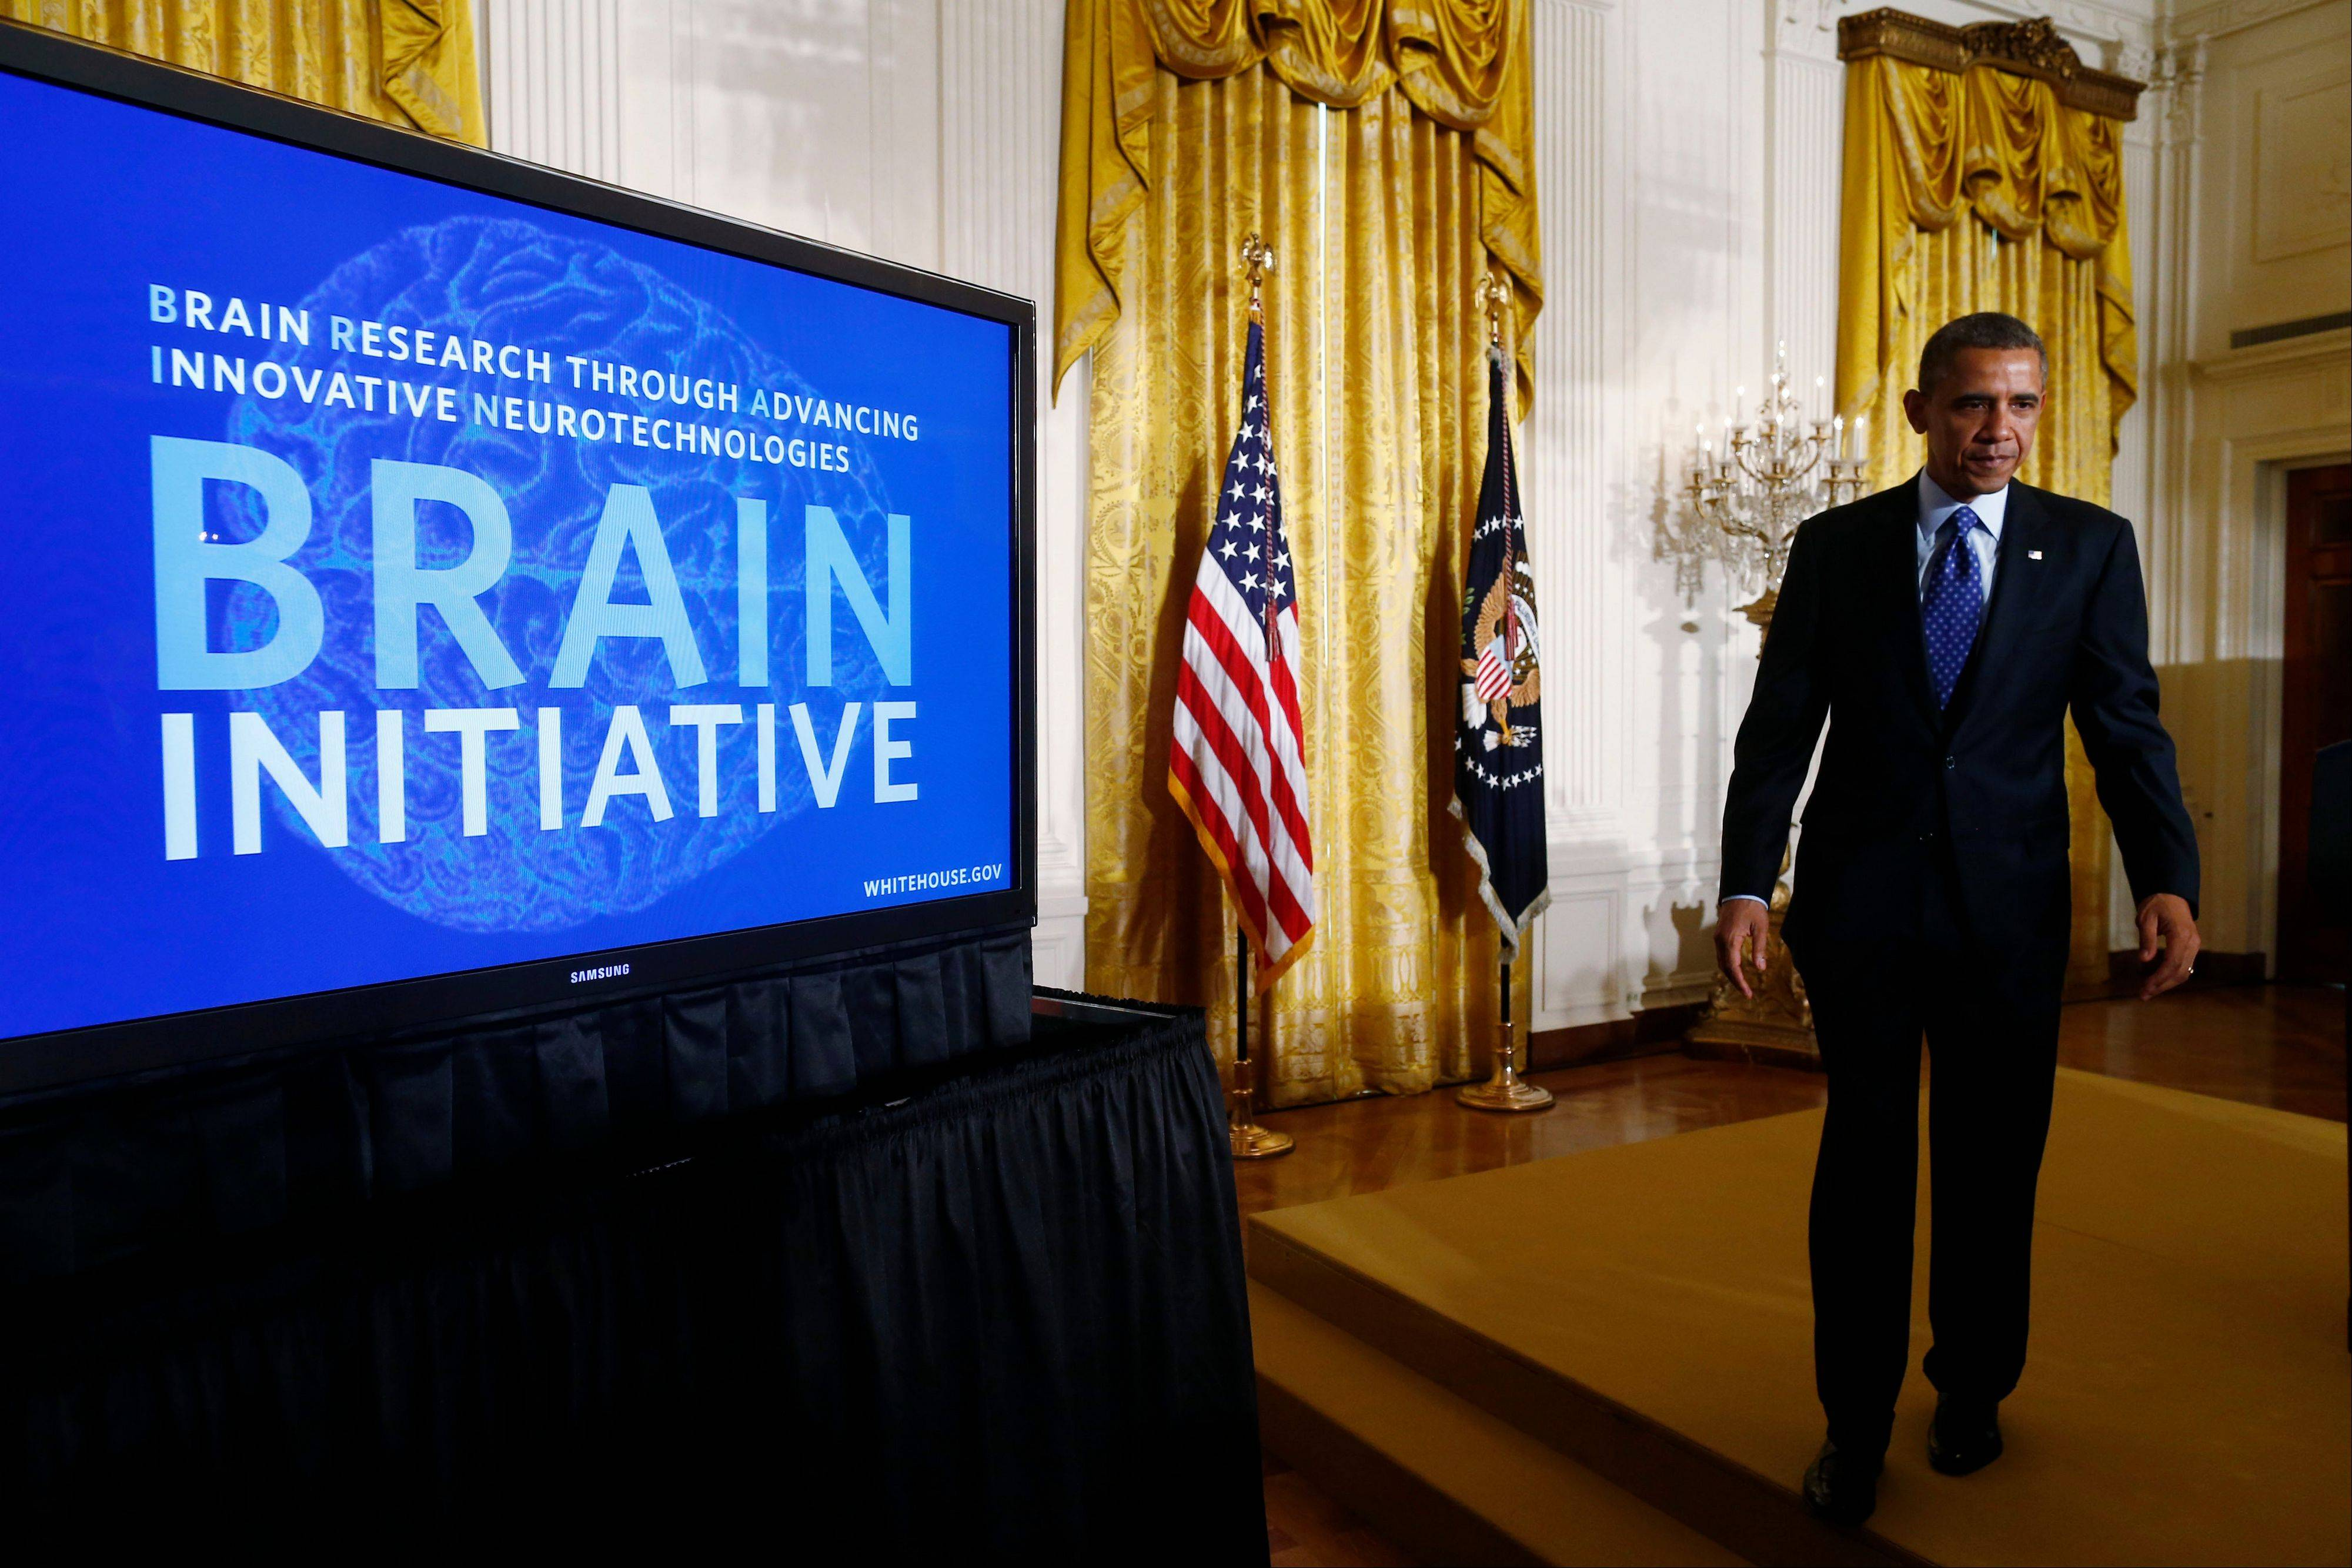 President Barack Obama on Tuesday outlined the BRAIN Initiative whose goal is to find treatments for some of the most common brain disorders, led by Alzheimer�s, epilepsy and brain injuries.